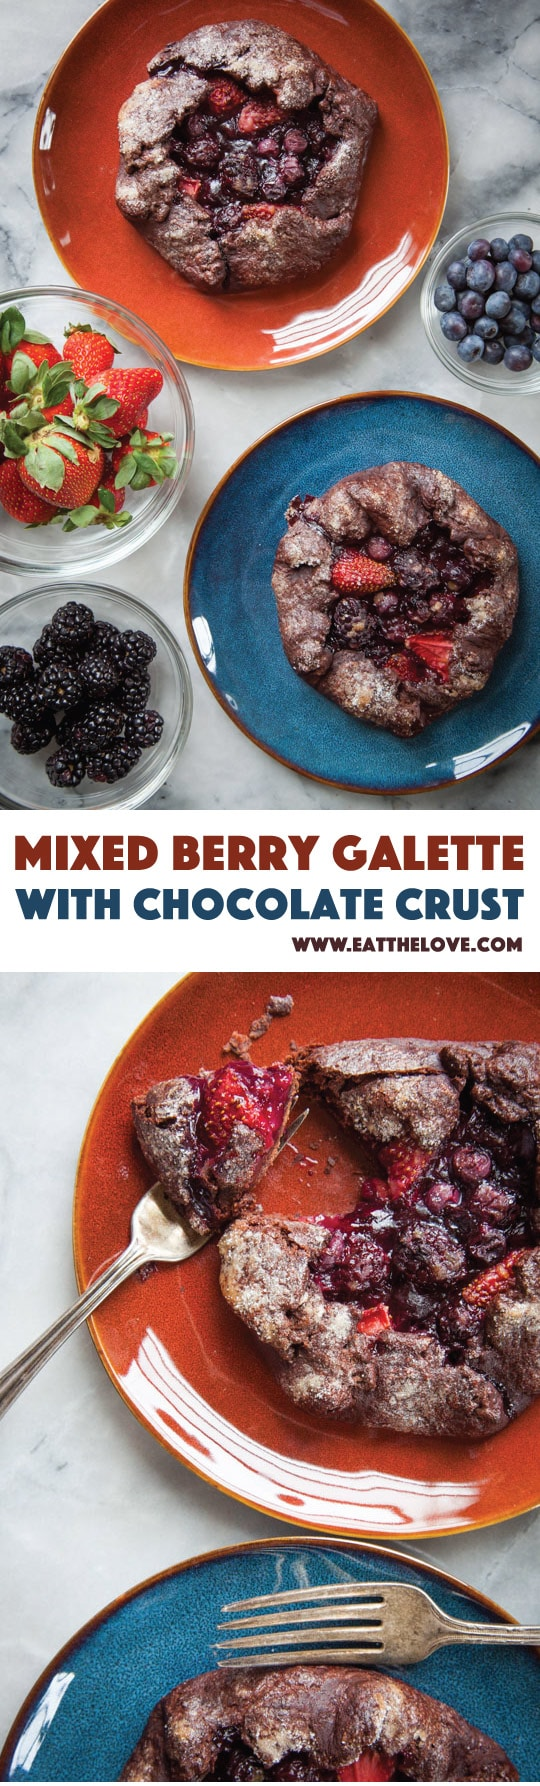 This easy to make mixed berry galette with chocolate crust is perfect for an intimate dinner for two! Photo and recipe by Irvin Lin of Eat the Love.